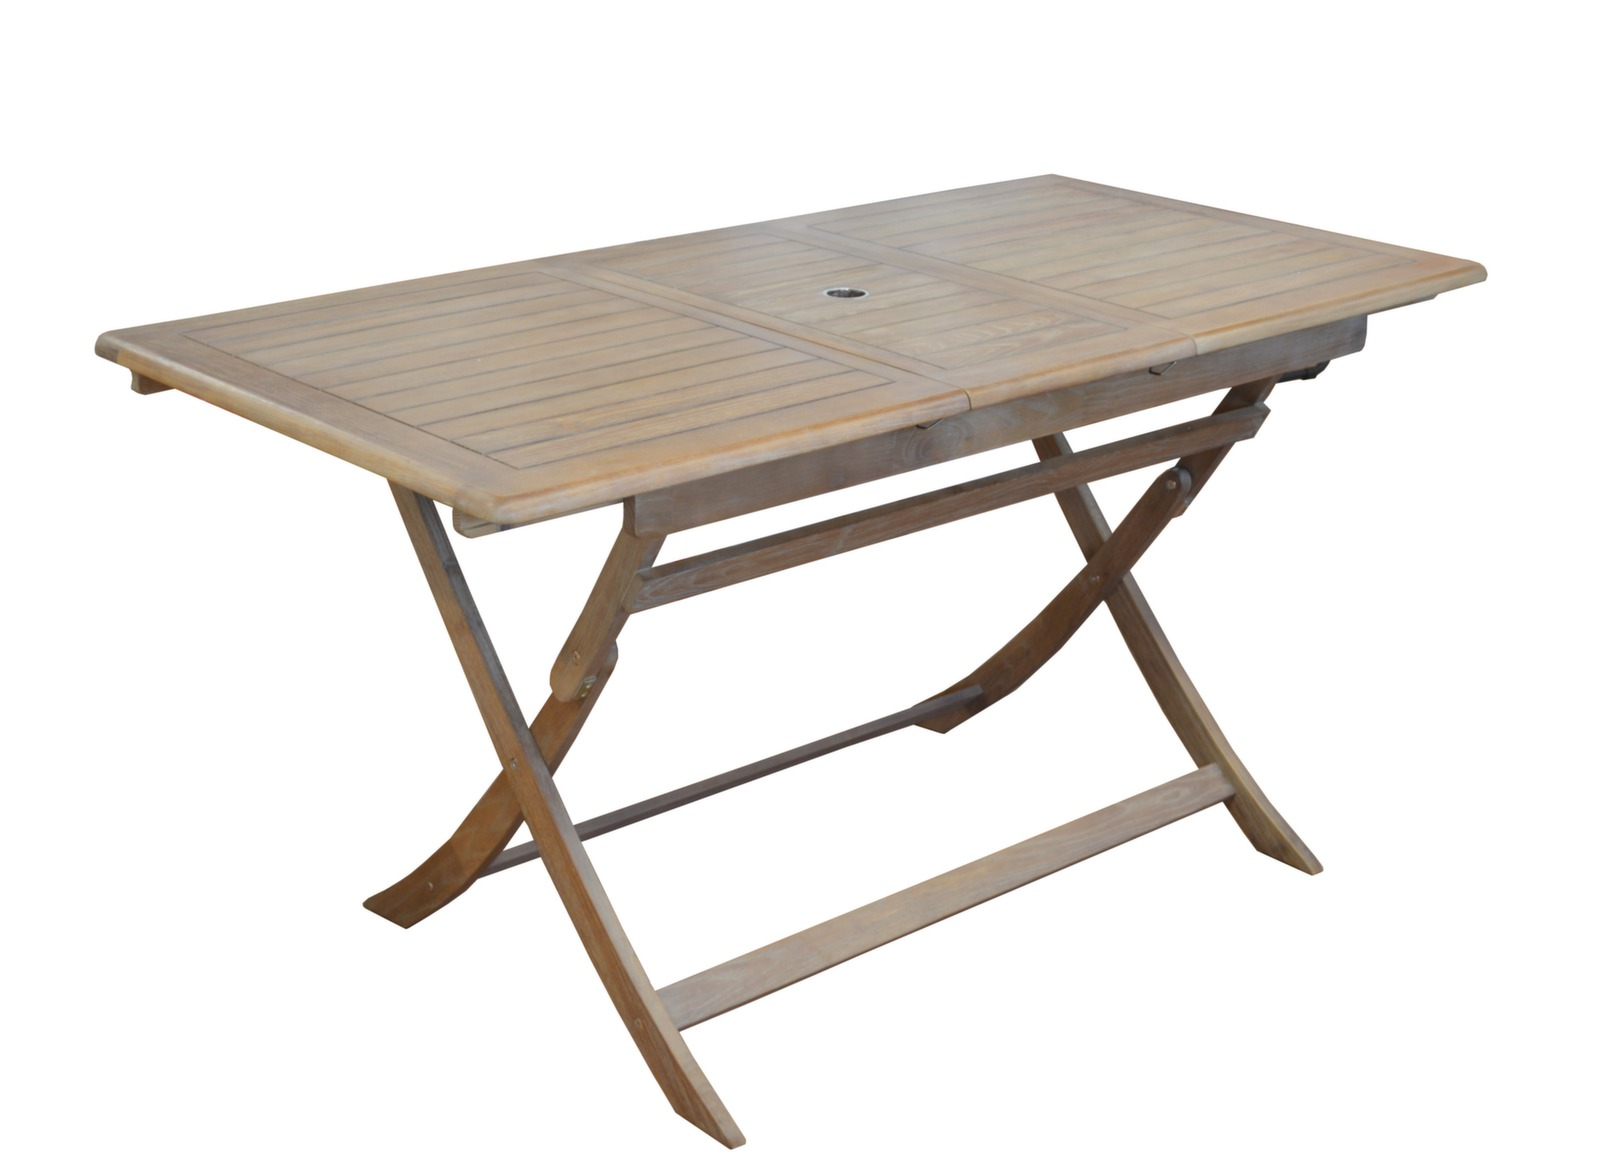 Beautiful salon de jardin en bois pliable contemporary - Table jardin bois pliante ...